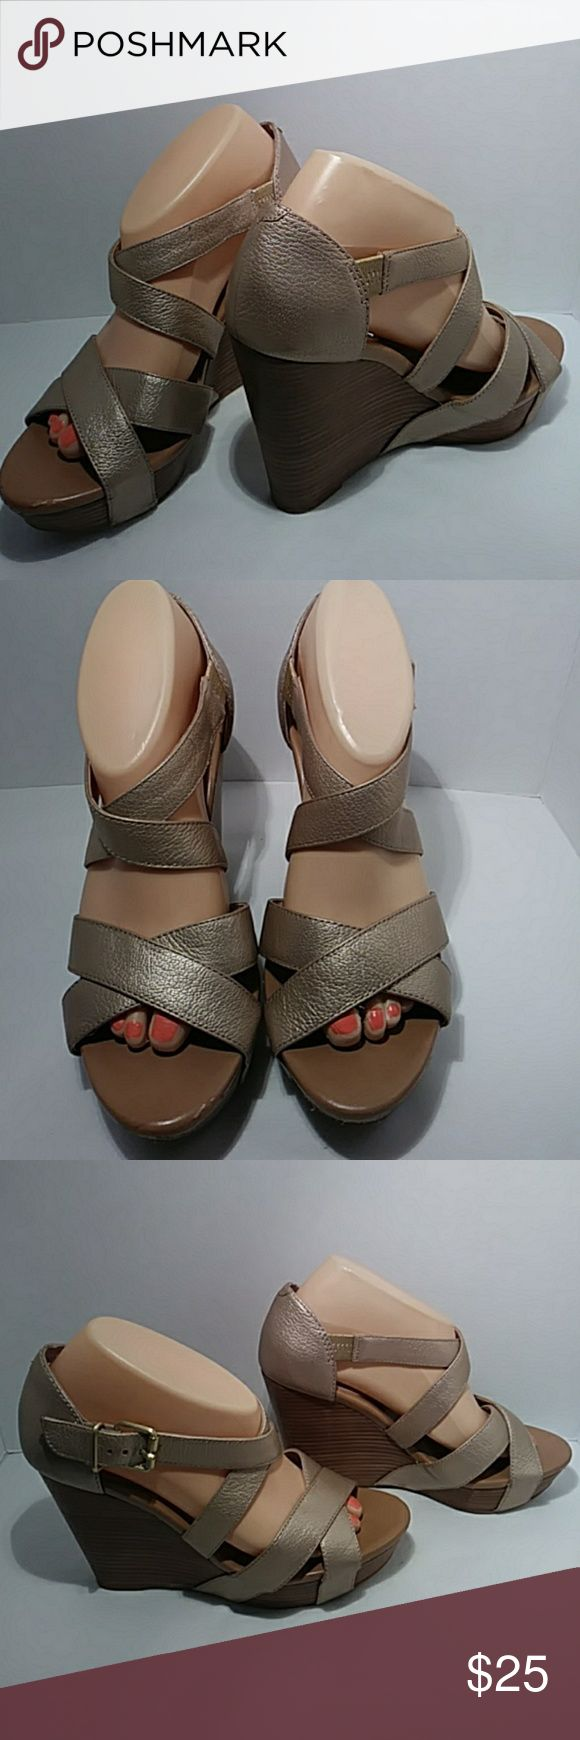 """Banana Republic gold wedge heels Pretty pearl gold leather wedge heels in good clean condition with 4"""" heels Banana Republic Shoes Wedges"""